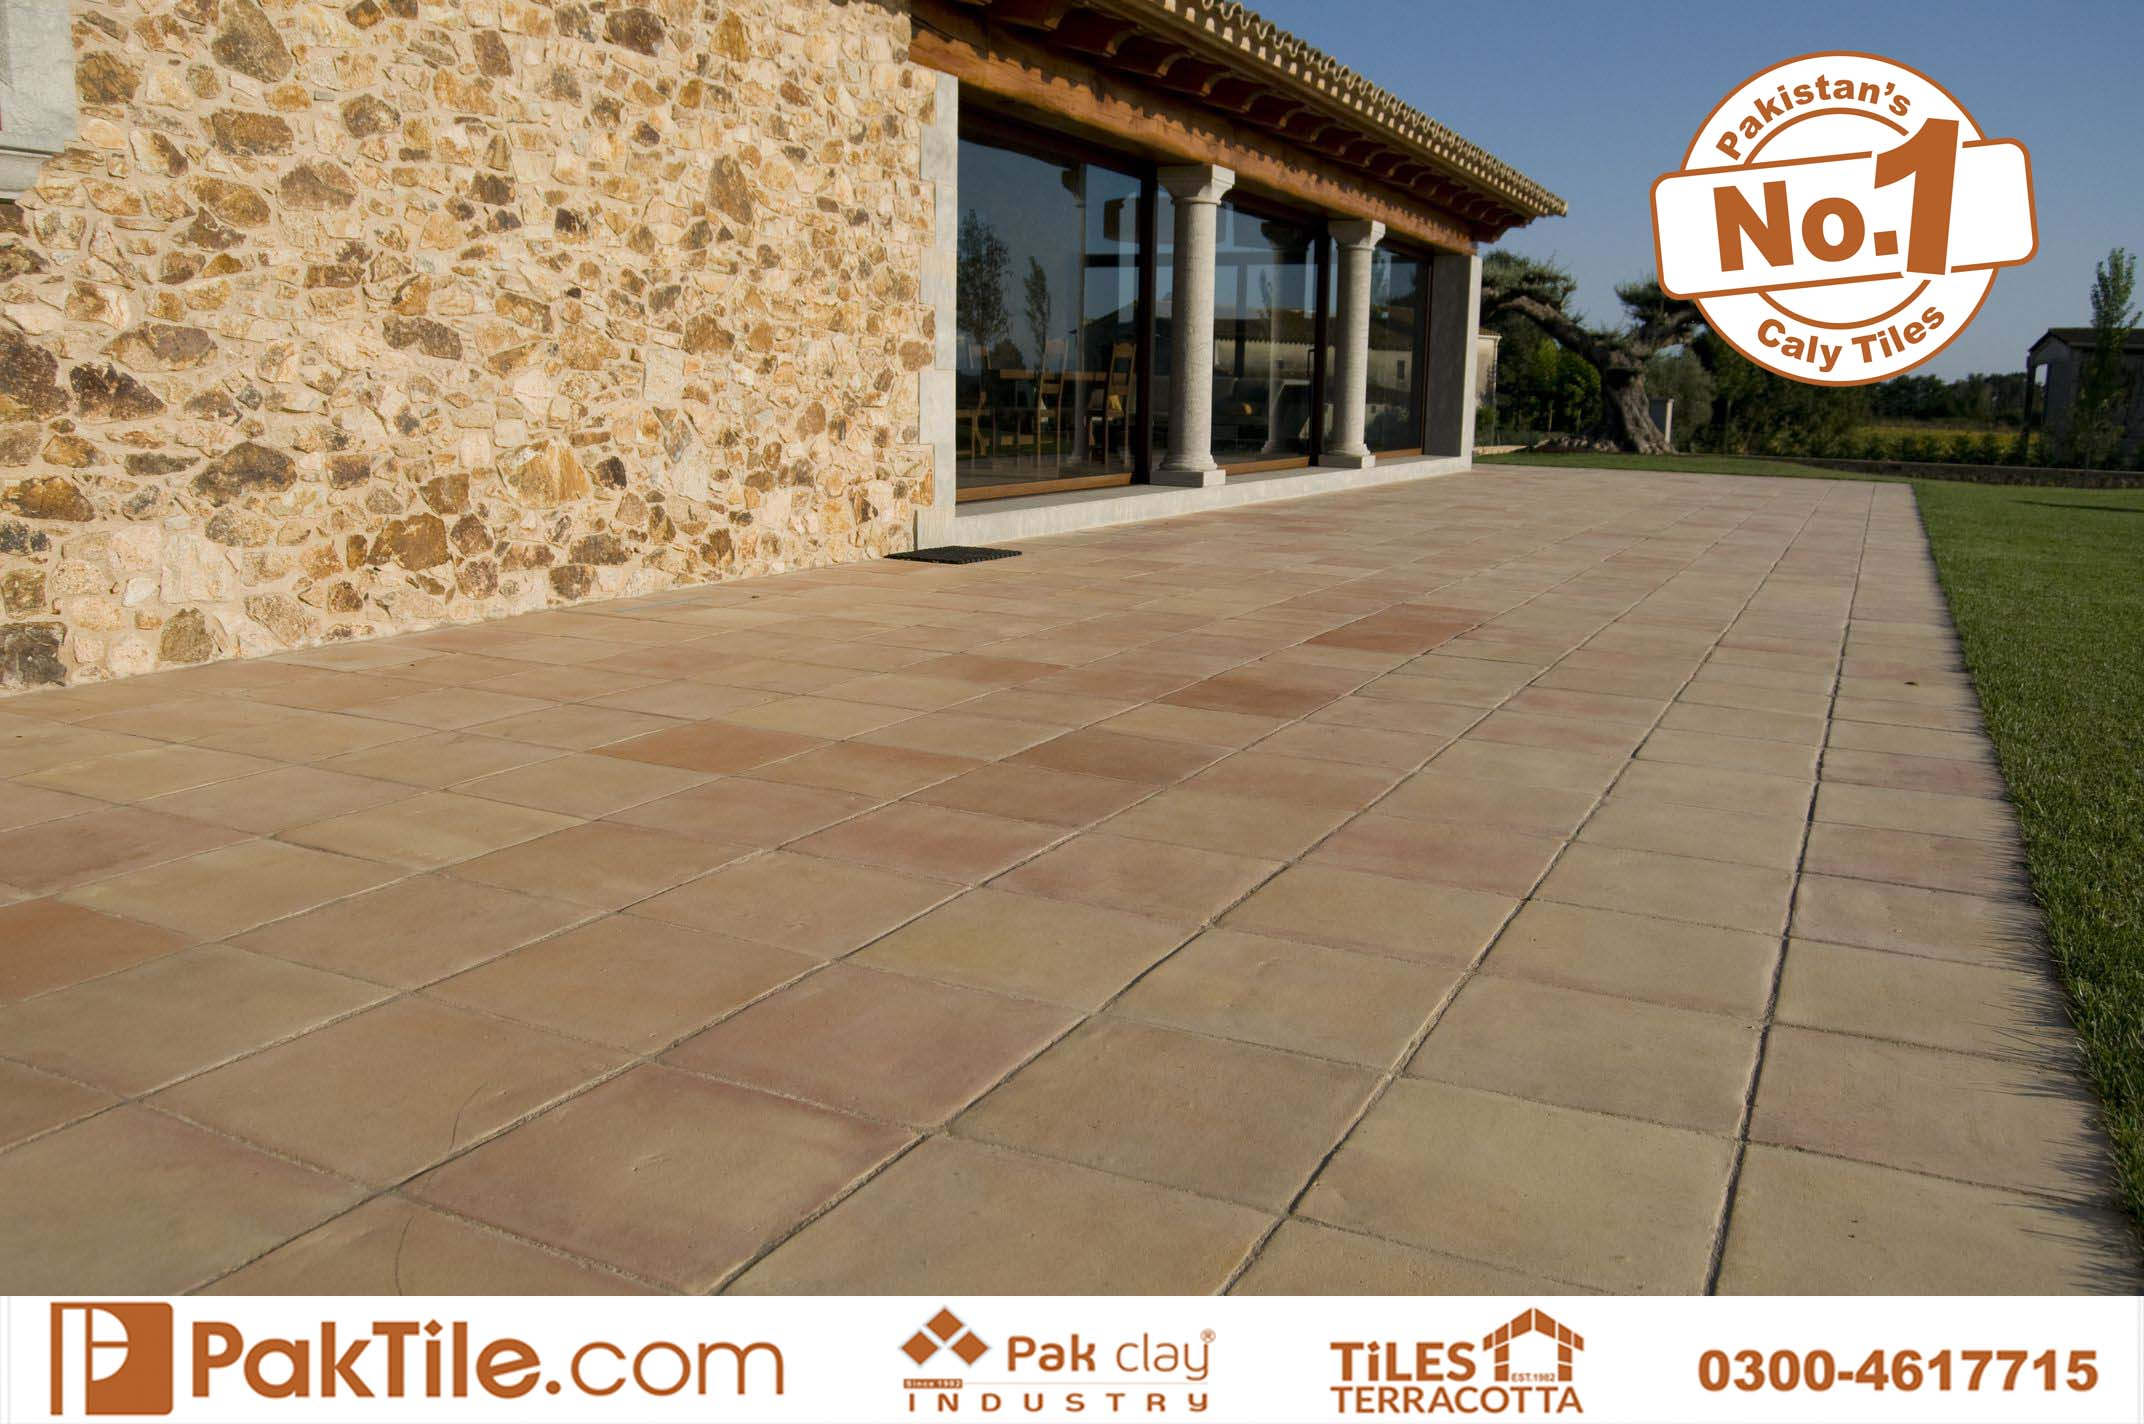 6 Anti Slip Outdoor Porcelain Look Ceramic Floor Tiles Design Prices in Lahore Pakistan Images